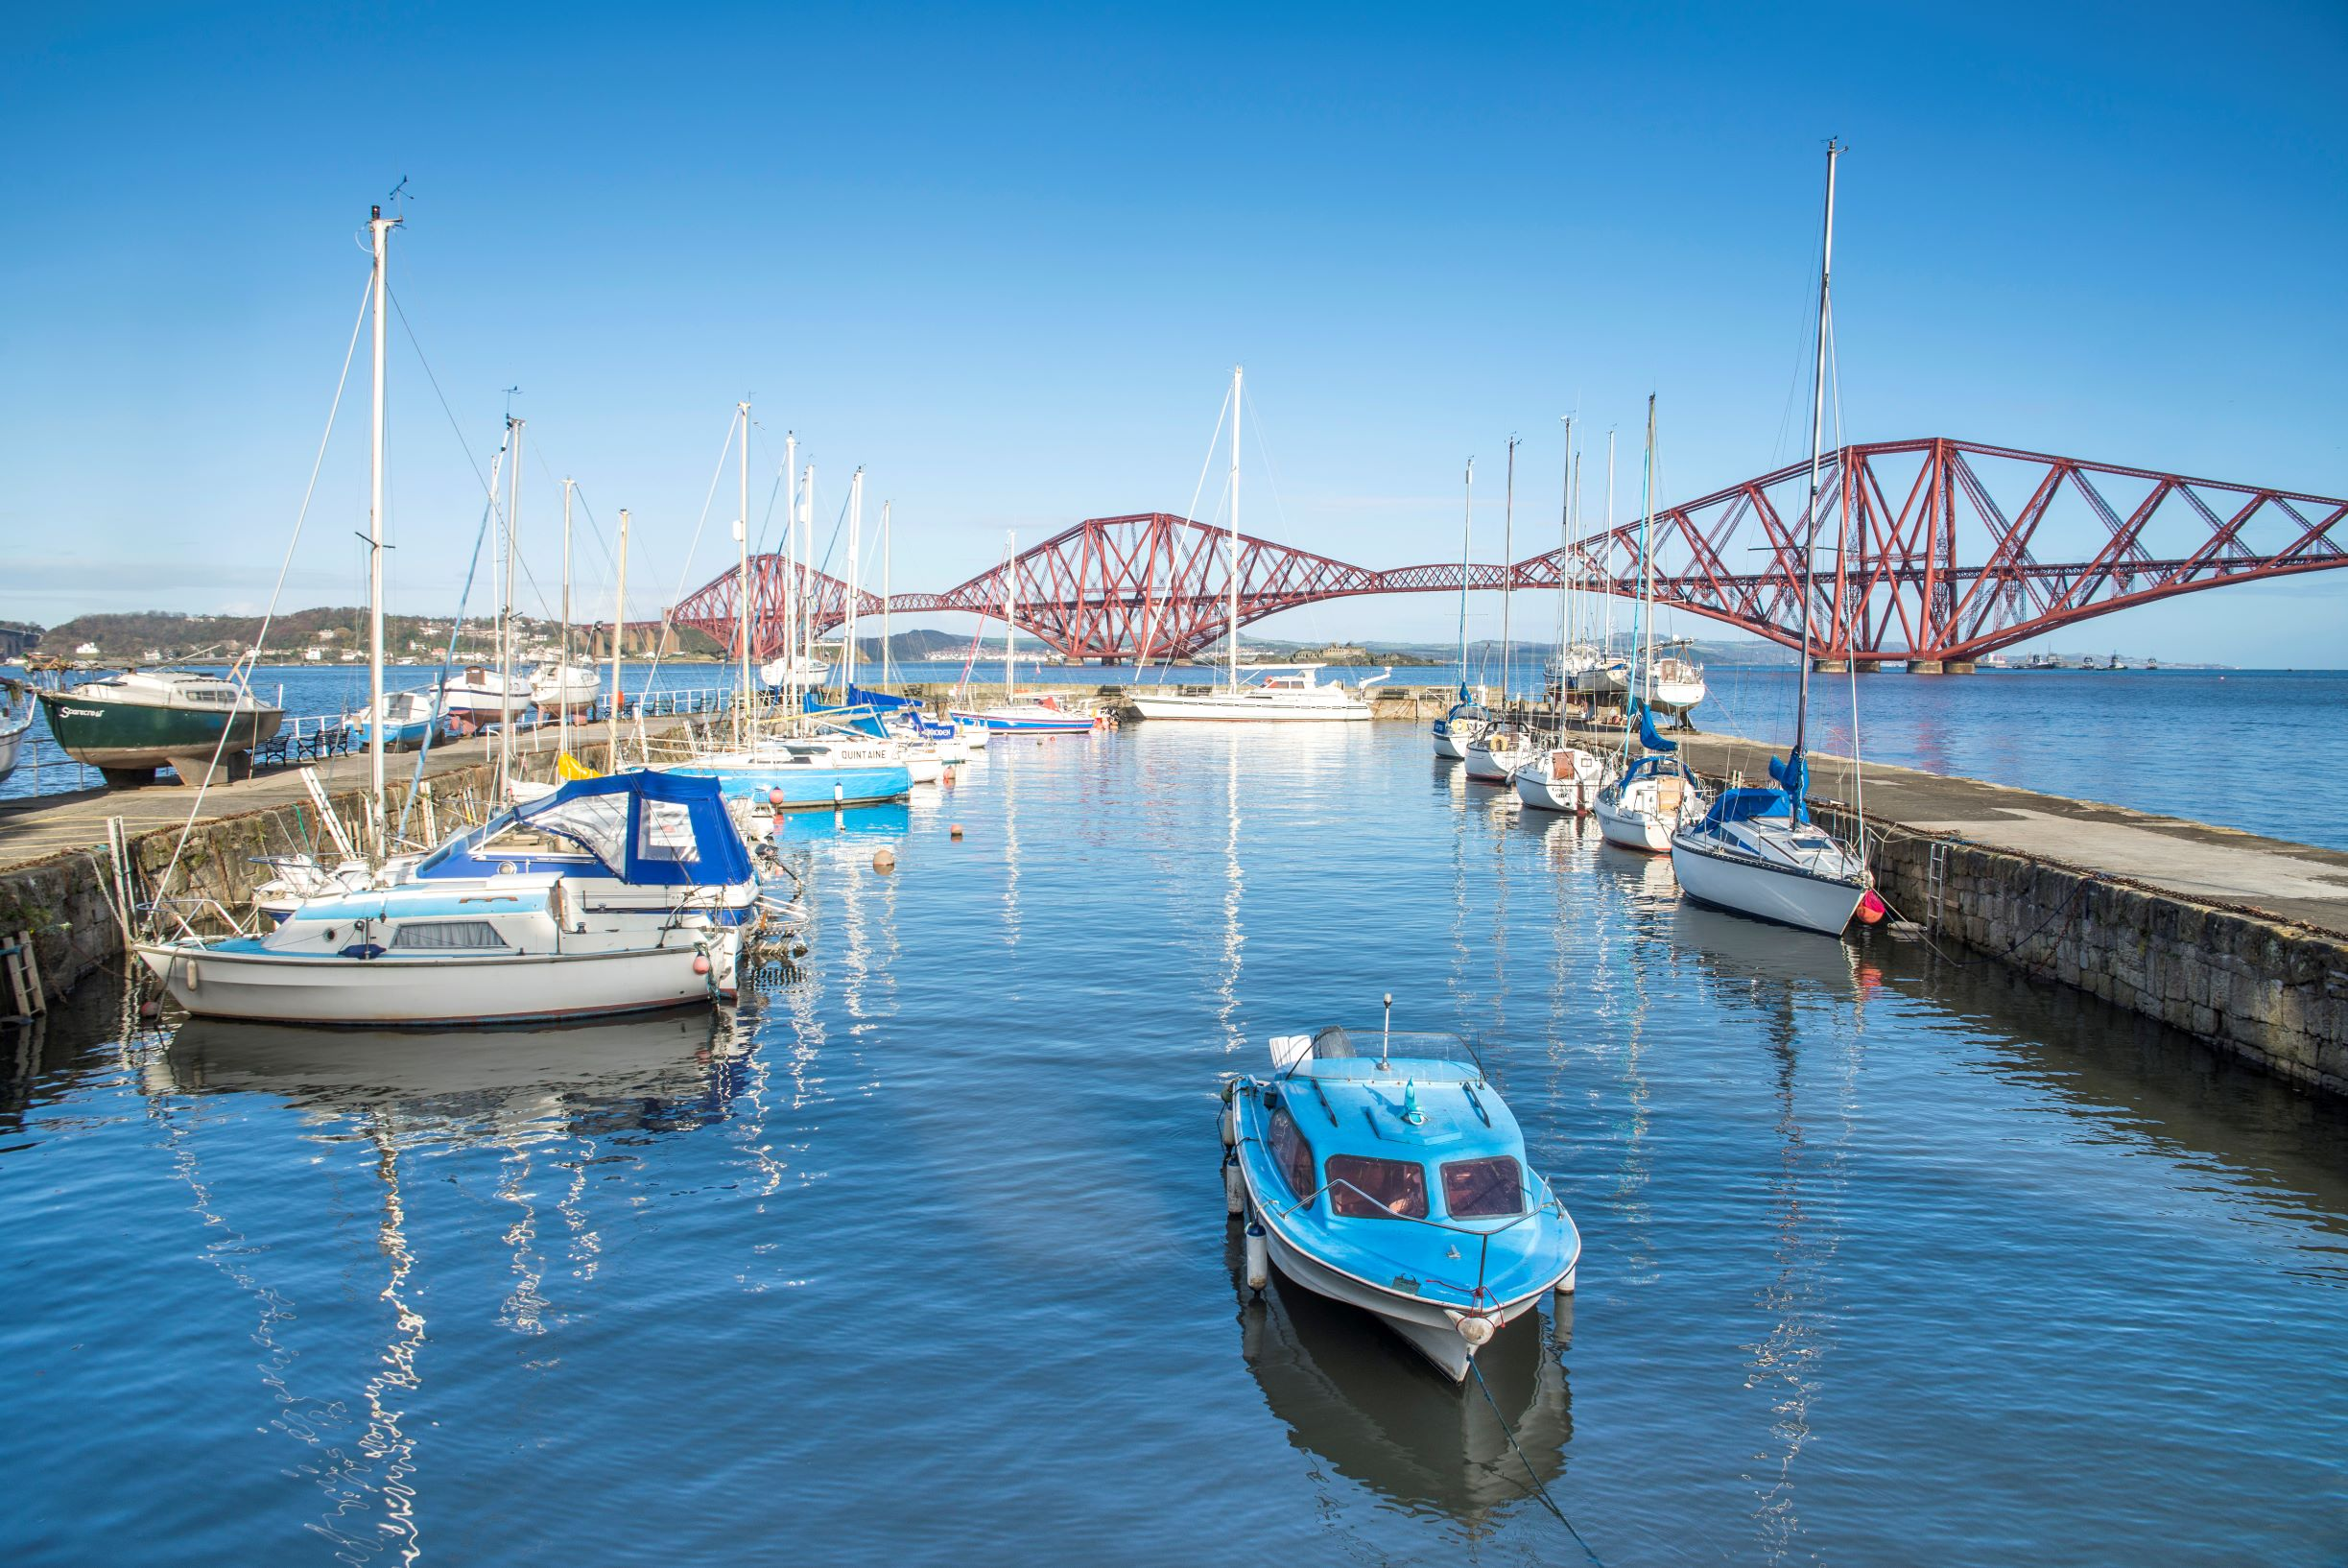 The Forth Bridge viewed from South Queensferry harbour